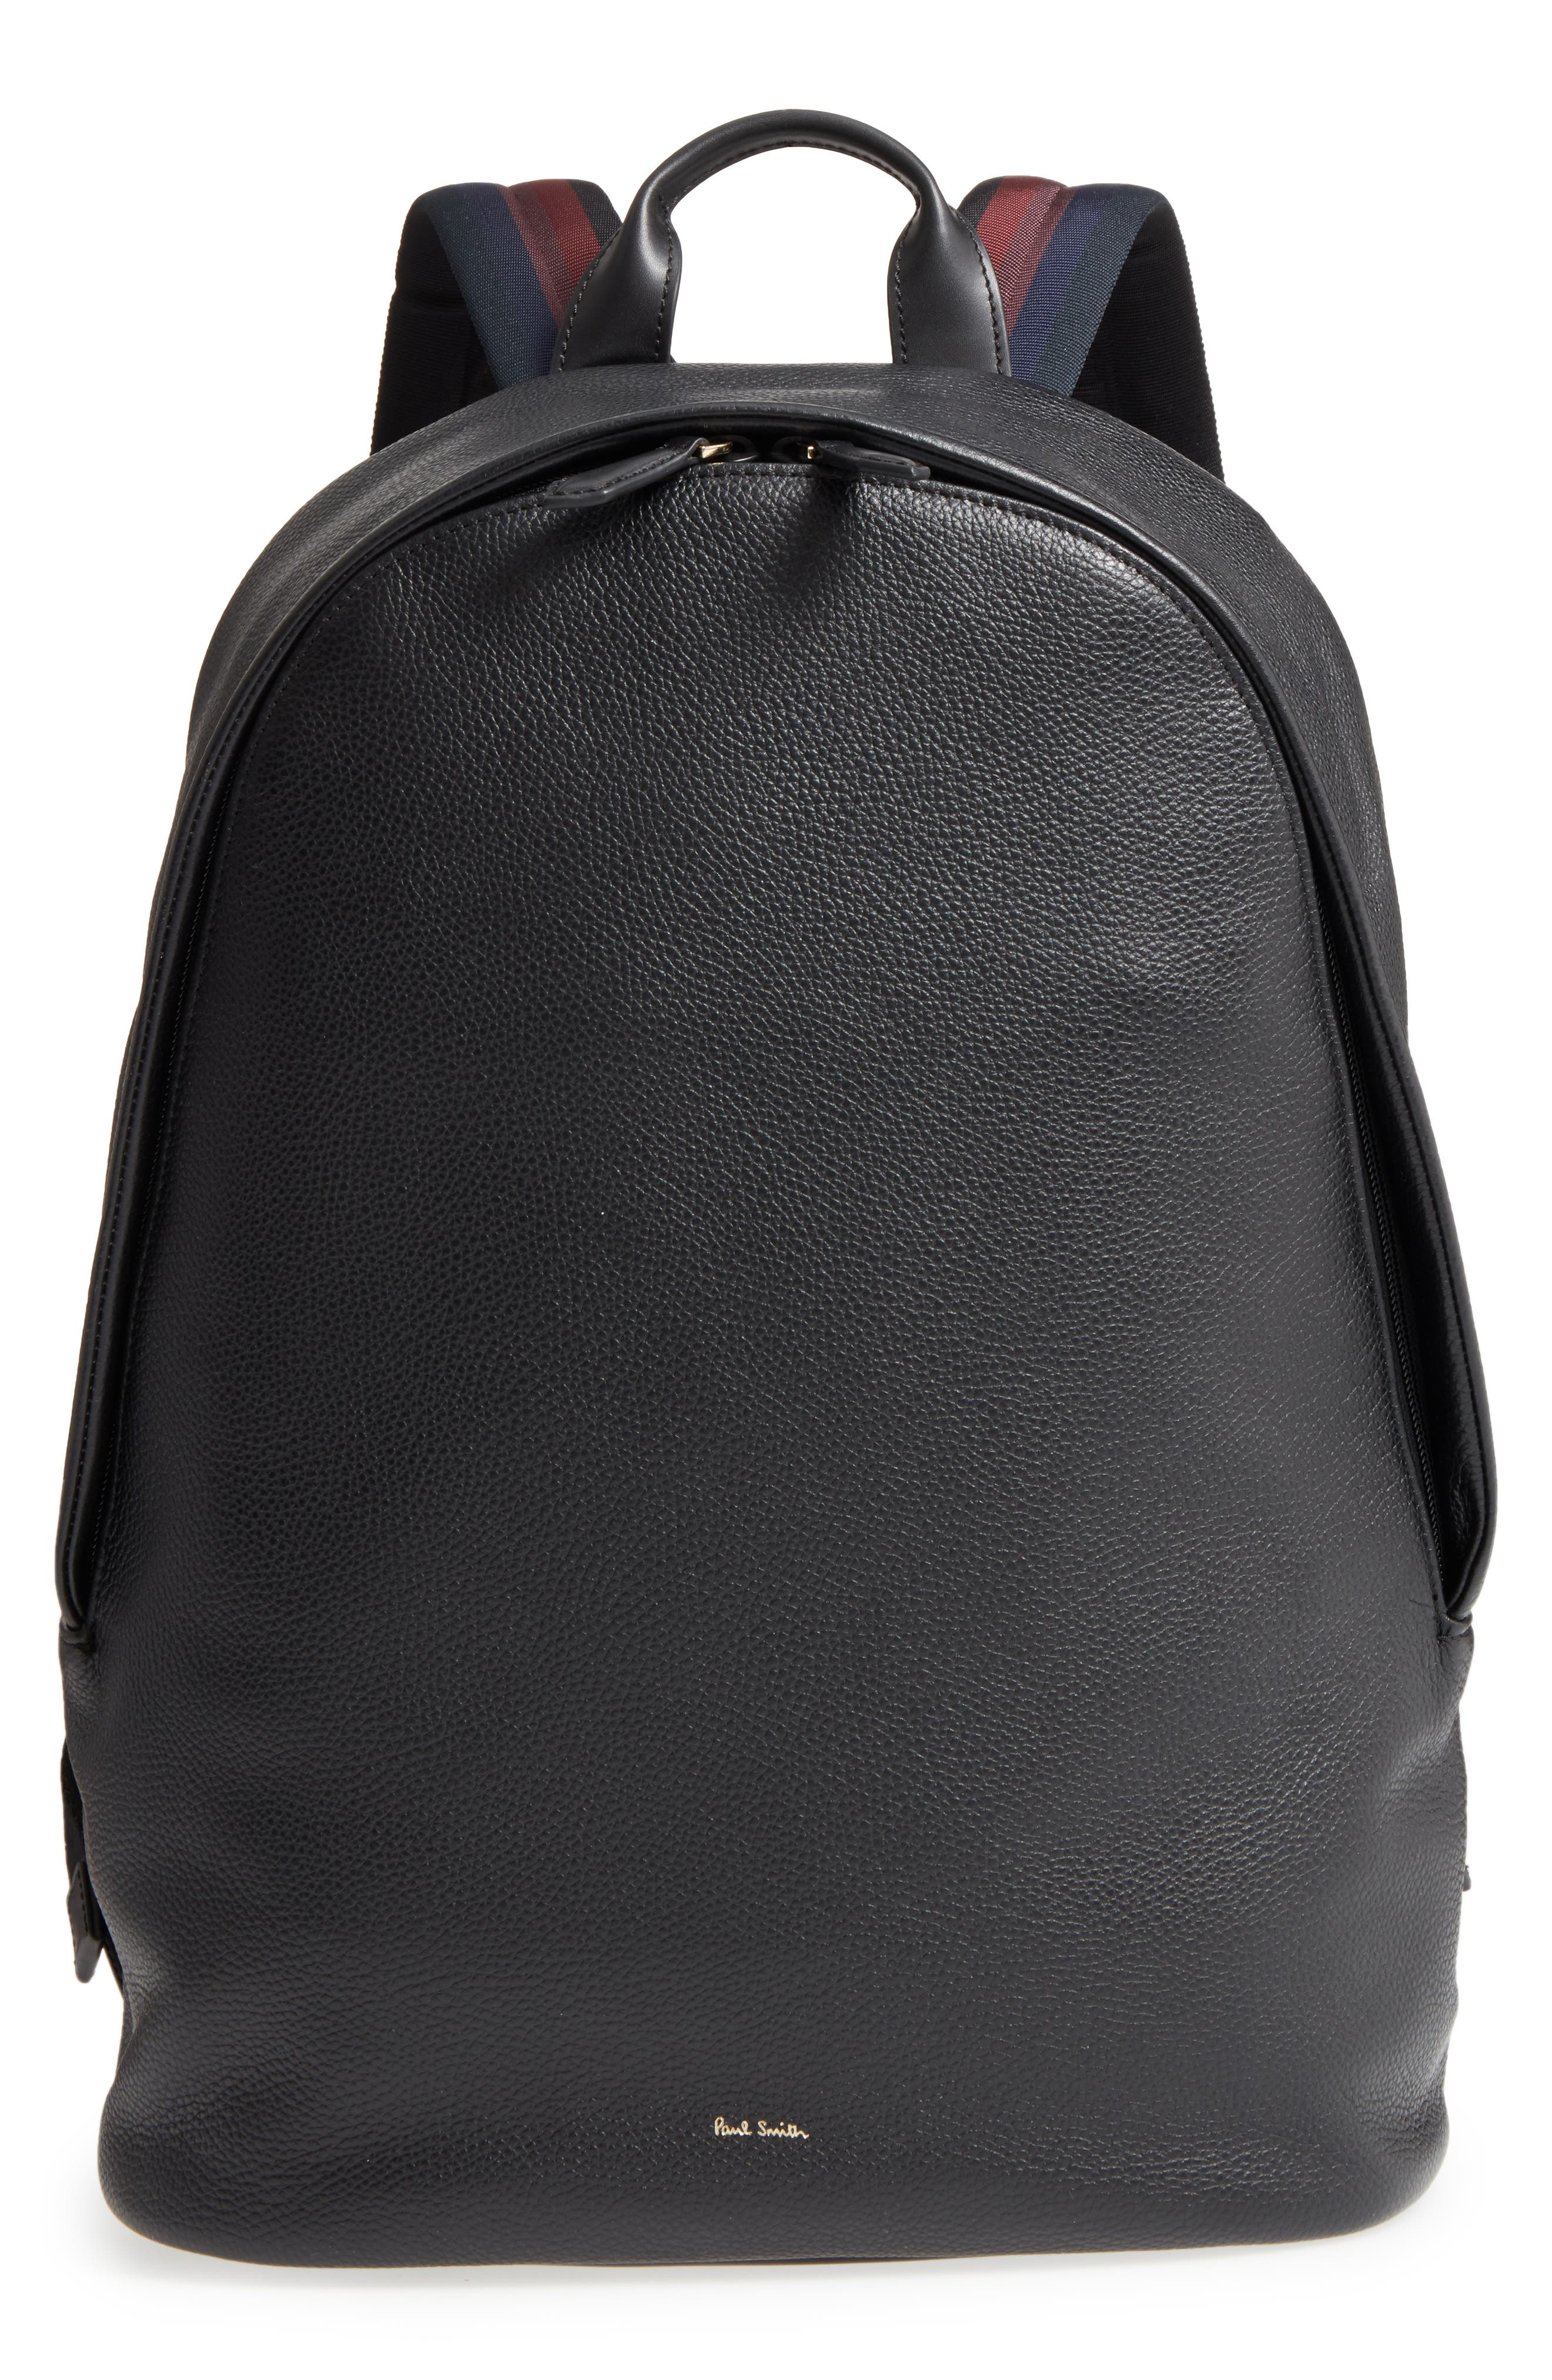 City Webbing Leather Backpack,                         Main,                         color, 001